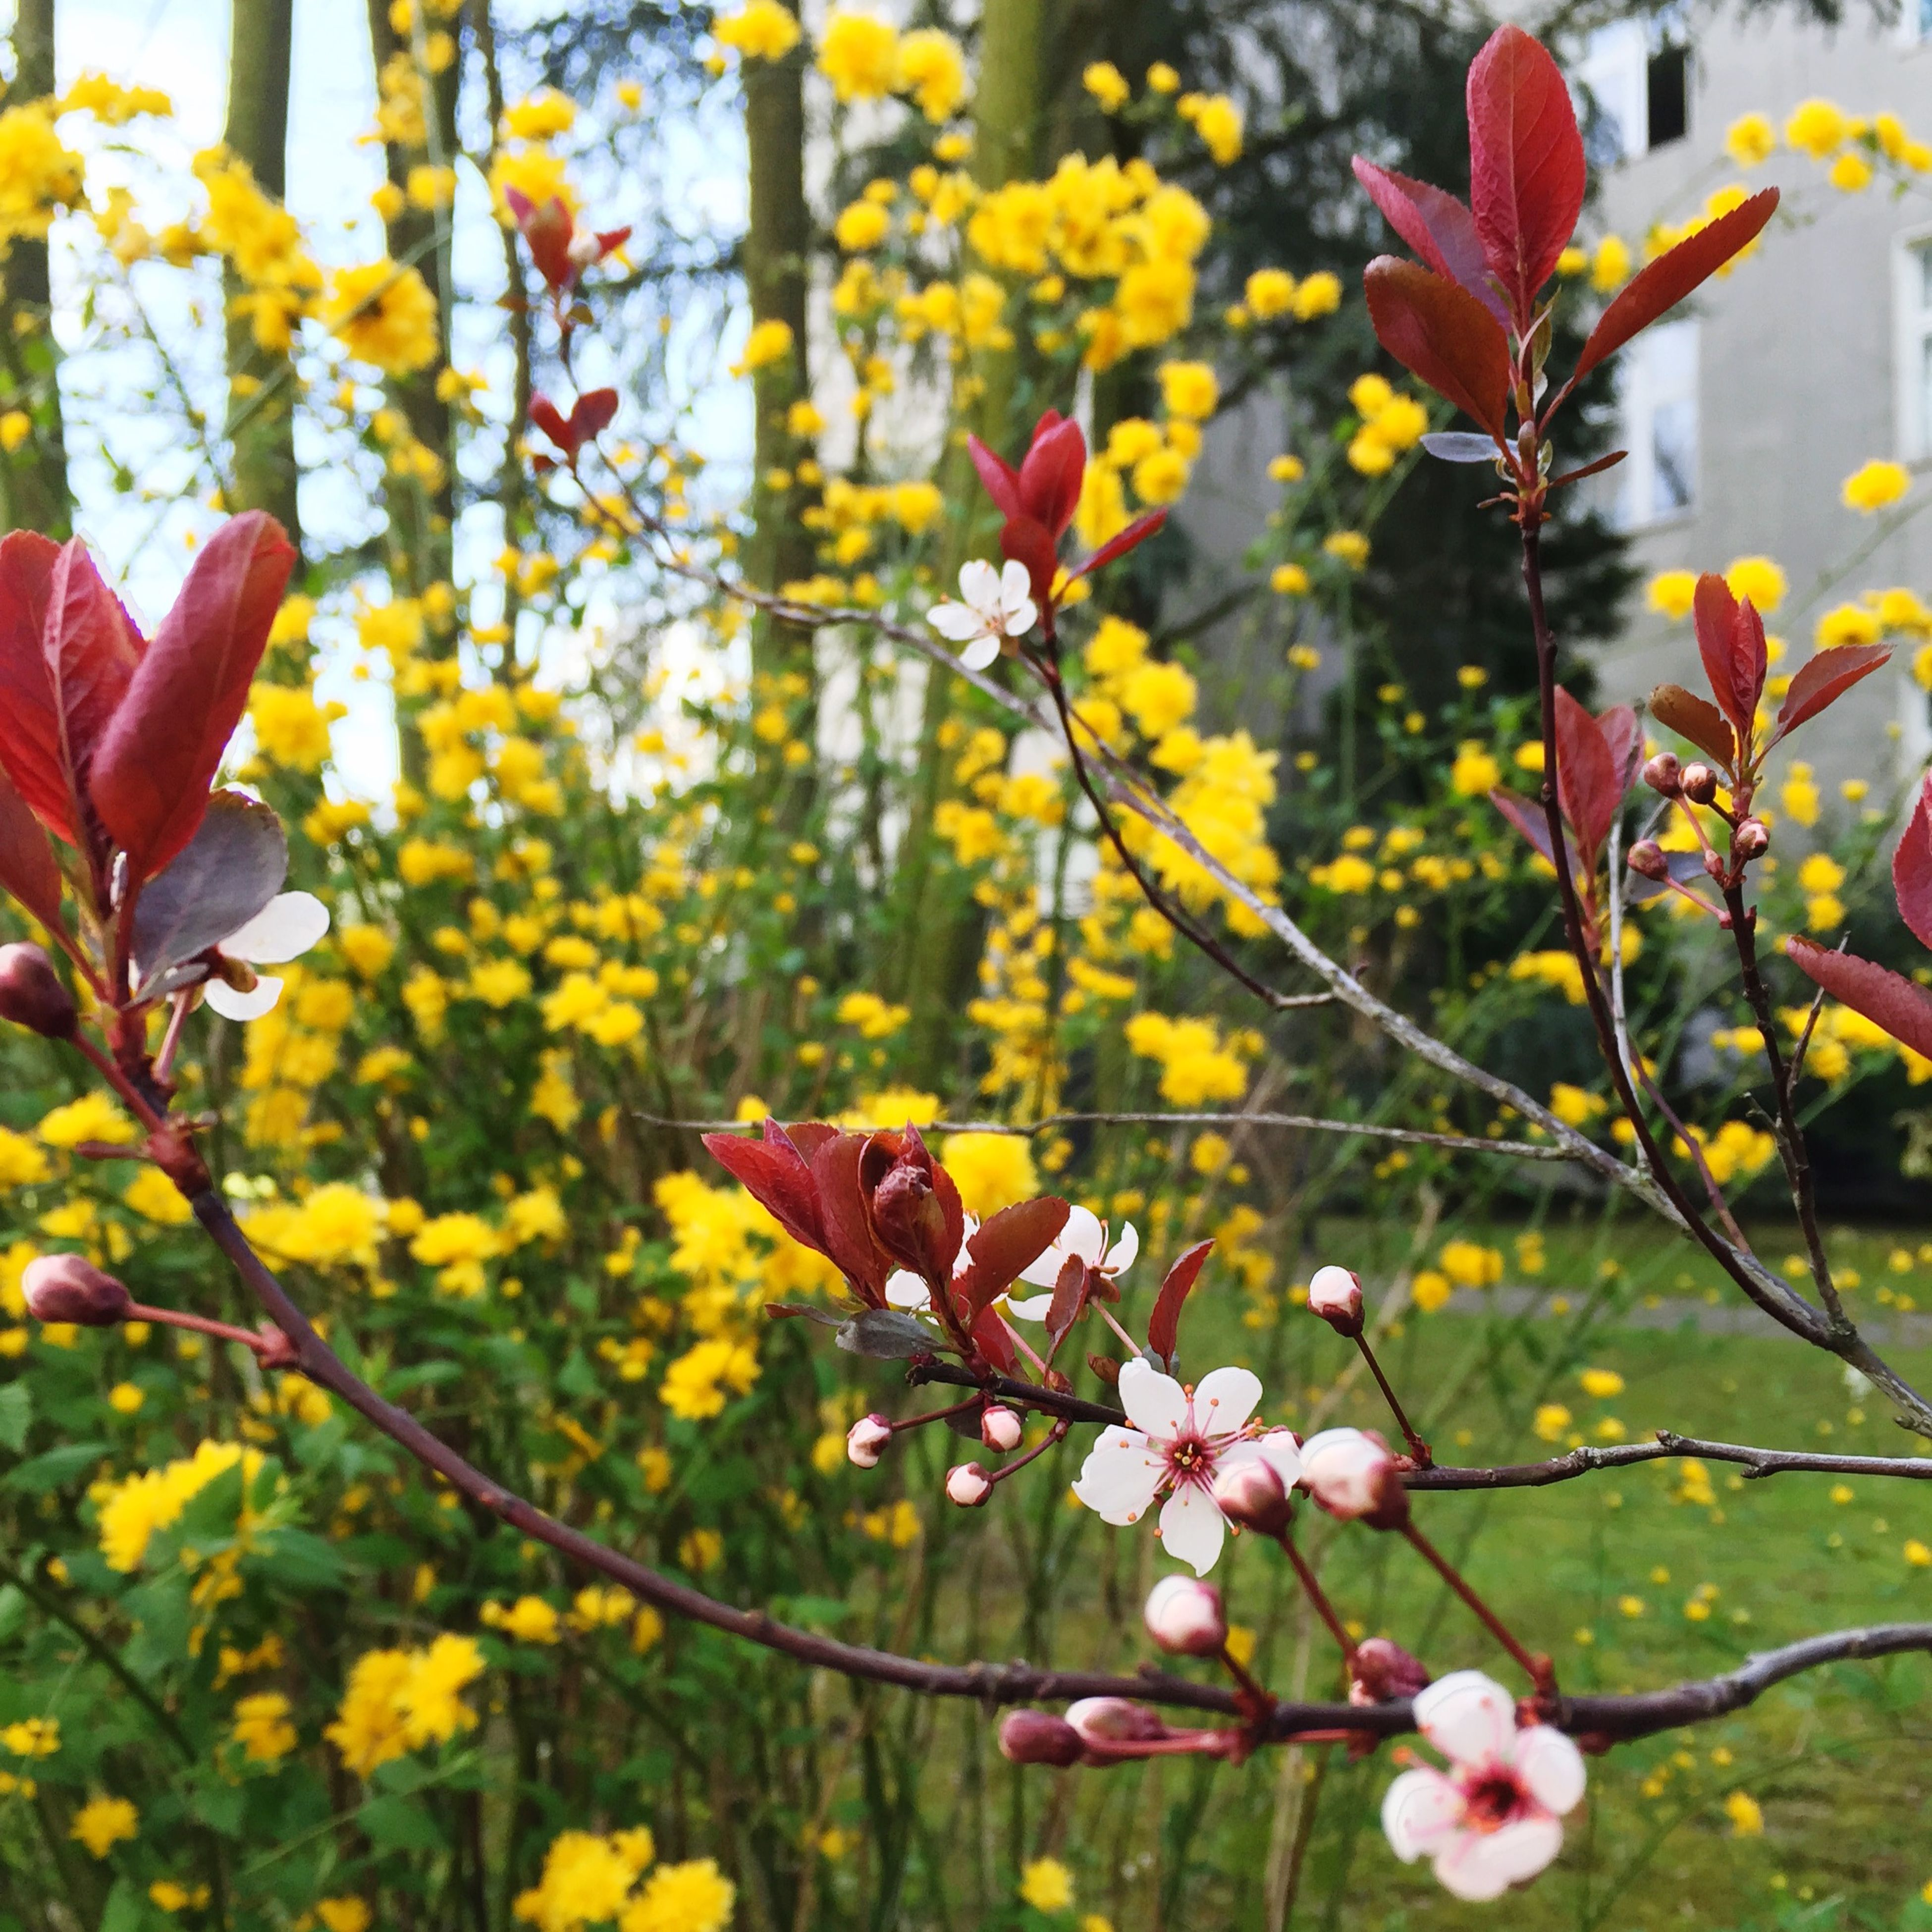 flower, freshness, growth, fragility, petal, yellow, beauty in nature, nature, focus on foreground, blooming, branch, close-up, blossom, flower head, in bloom, plant, springtime, stem, pink color, tree